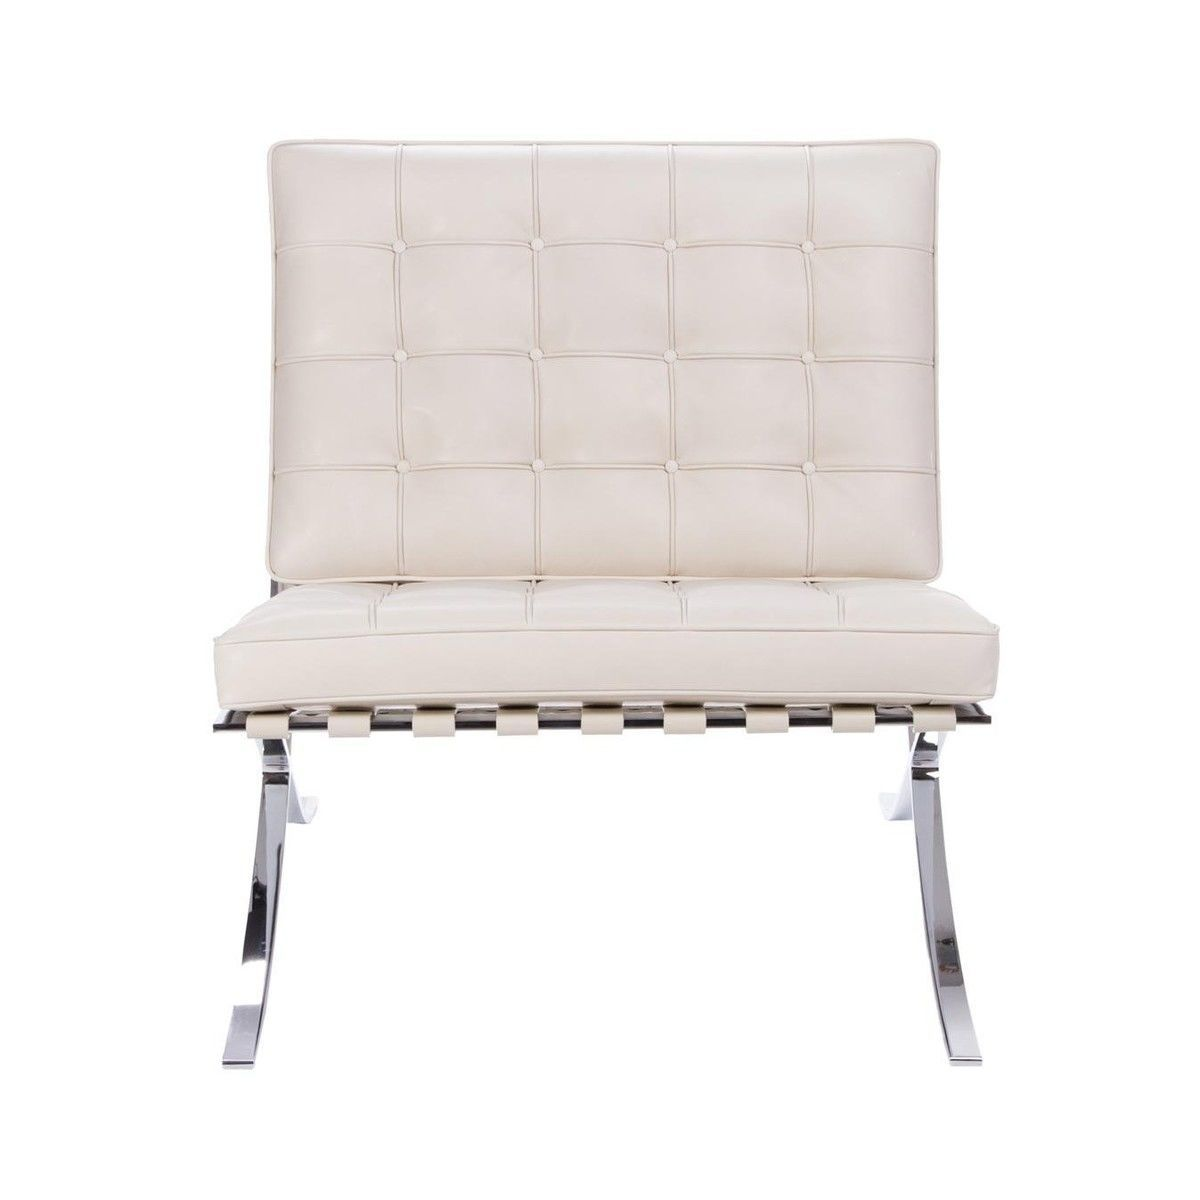 Mies Van Der Rohe Sessel Barcelona Mies Van Der Rohe Relax Sessel Knoll